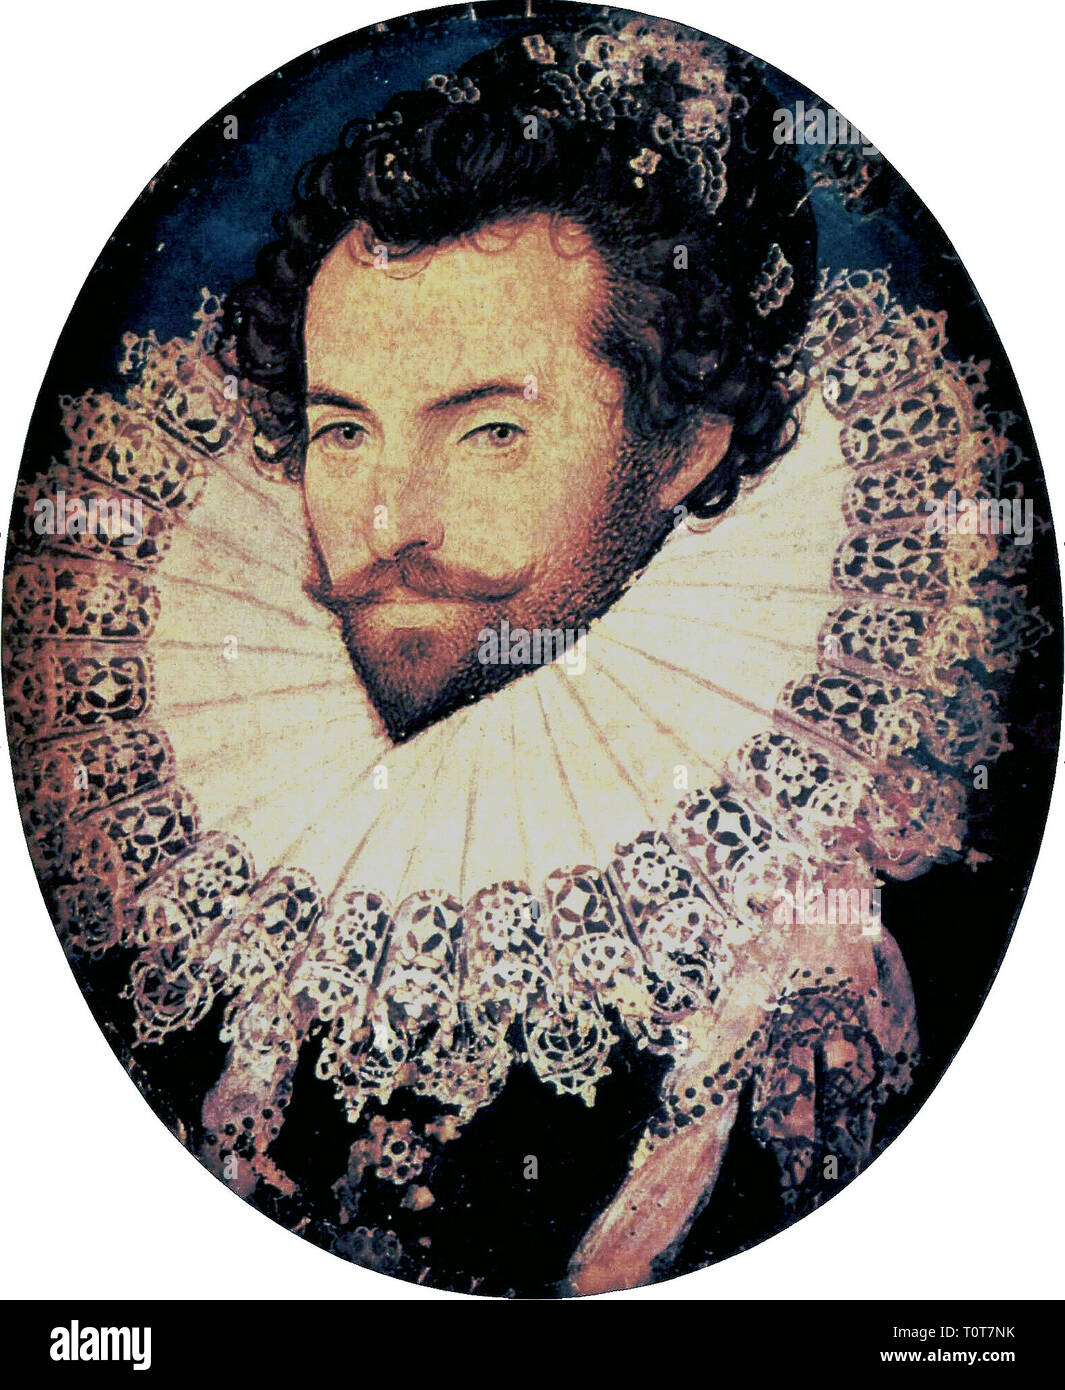 Sir Walter Raleigh, 1585 by Nicholas Hilliard - Stock Image